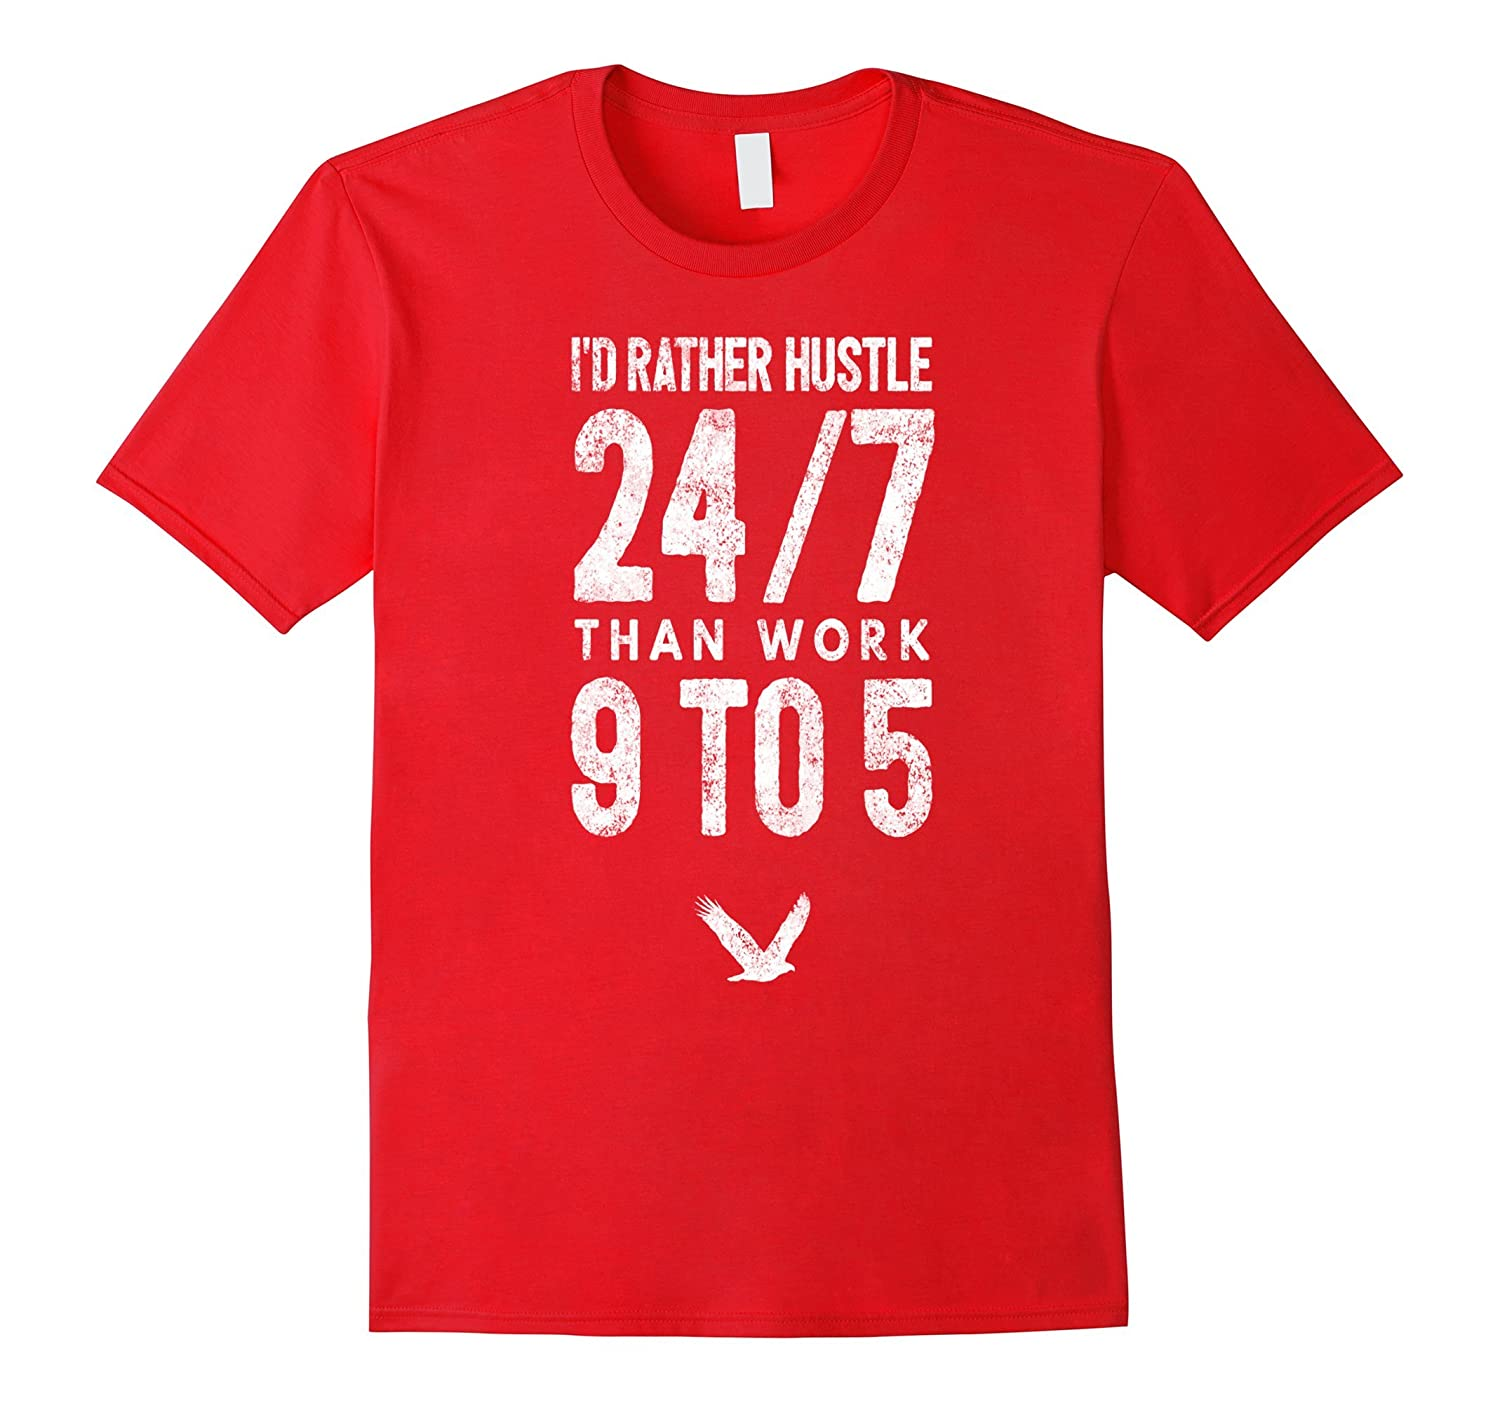 Id Rather Hustle 247 Than Work 9 To 5 - T-Shirt-PL